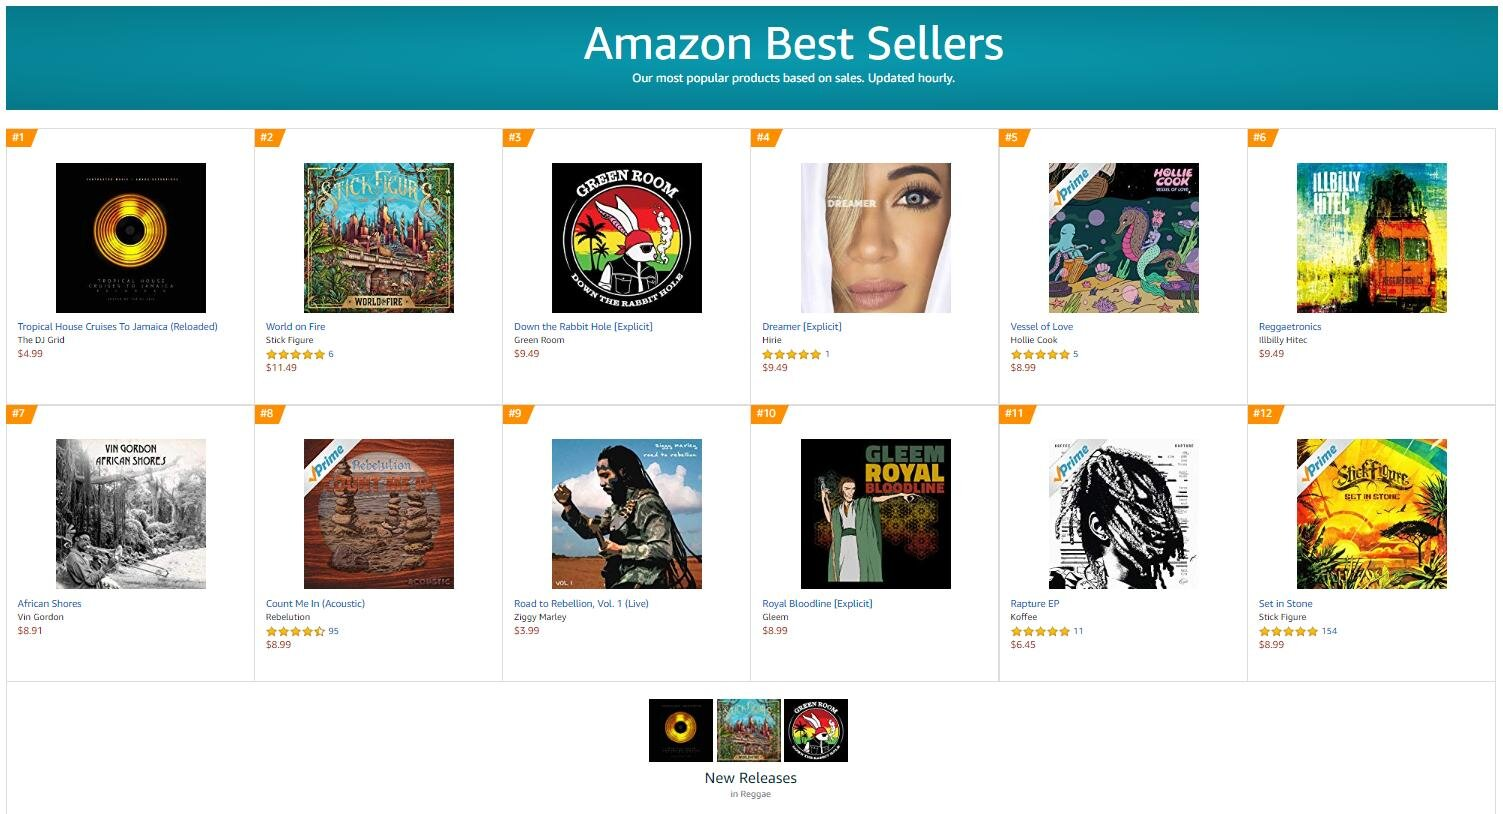 Tropical House Cruises To Jamaica (Reloaded) Peaks at #1 On The Amazon Music Charts